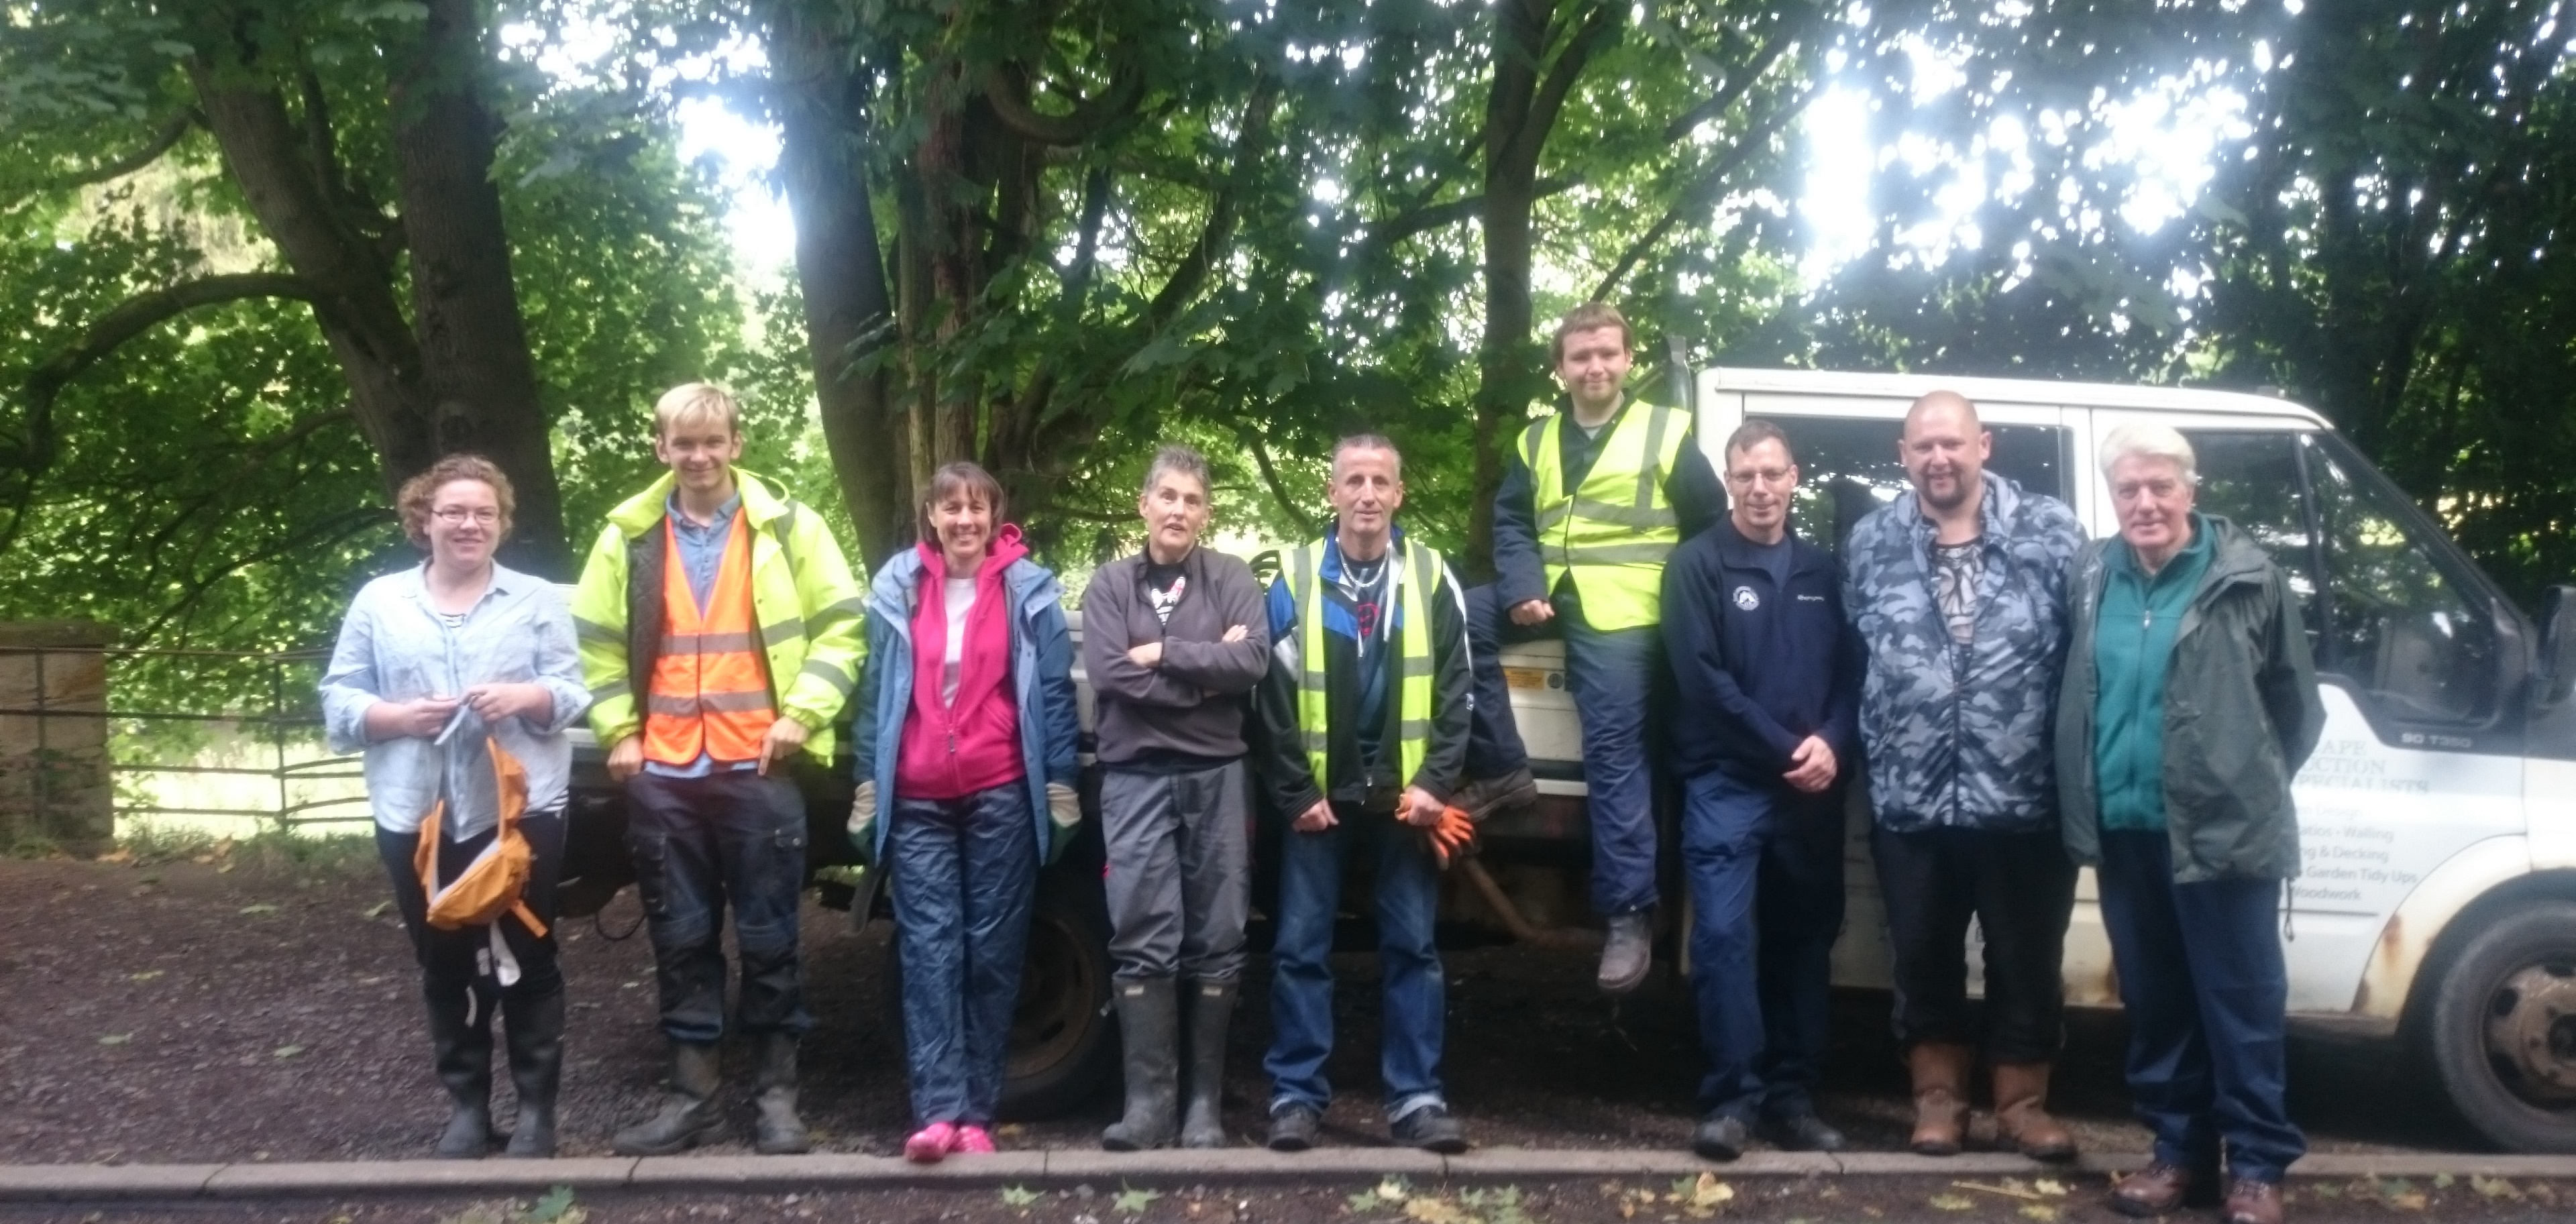 The Mauldslie Woods volunteer group meet on the first Thursday of every month